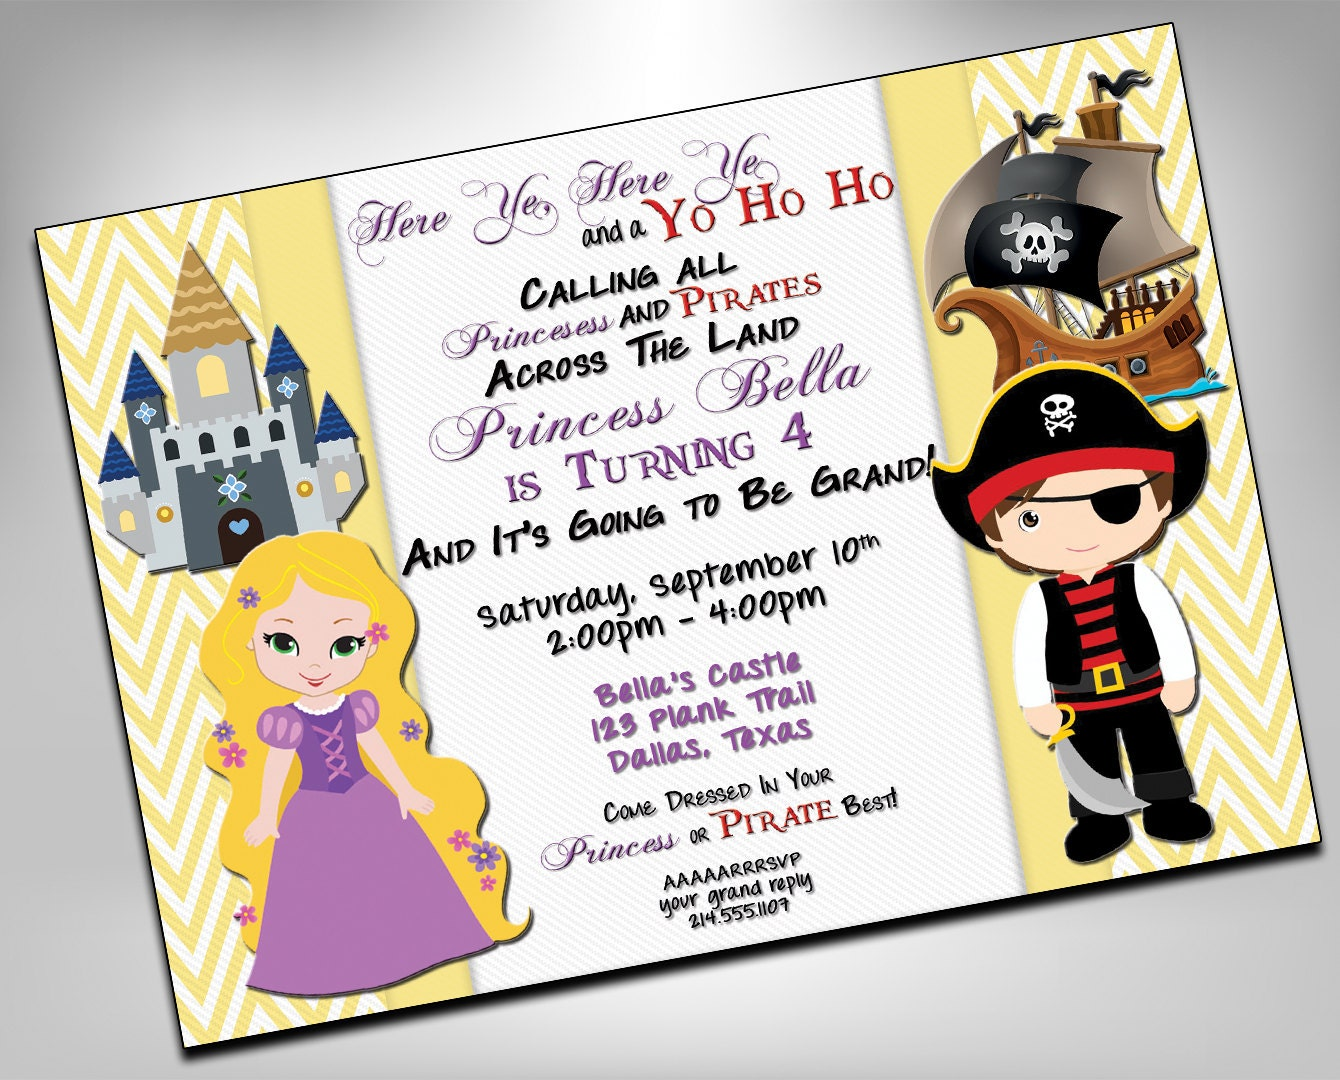 Princess and Pirate Birthday Party Twin Birthday Invite